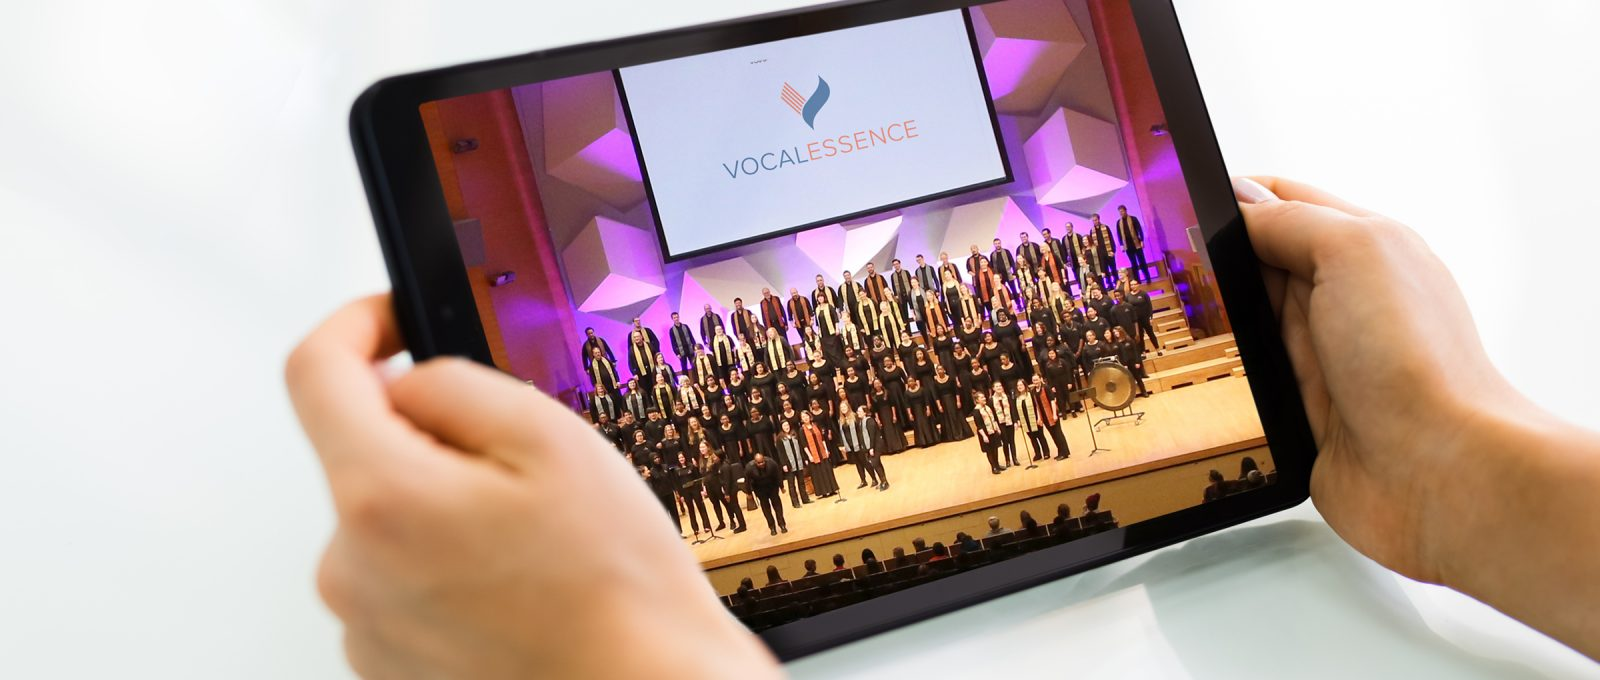 Hands holding tablet with image of many singers performing on stage